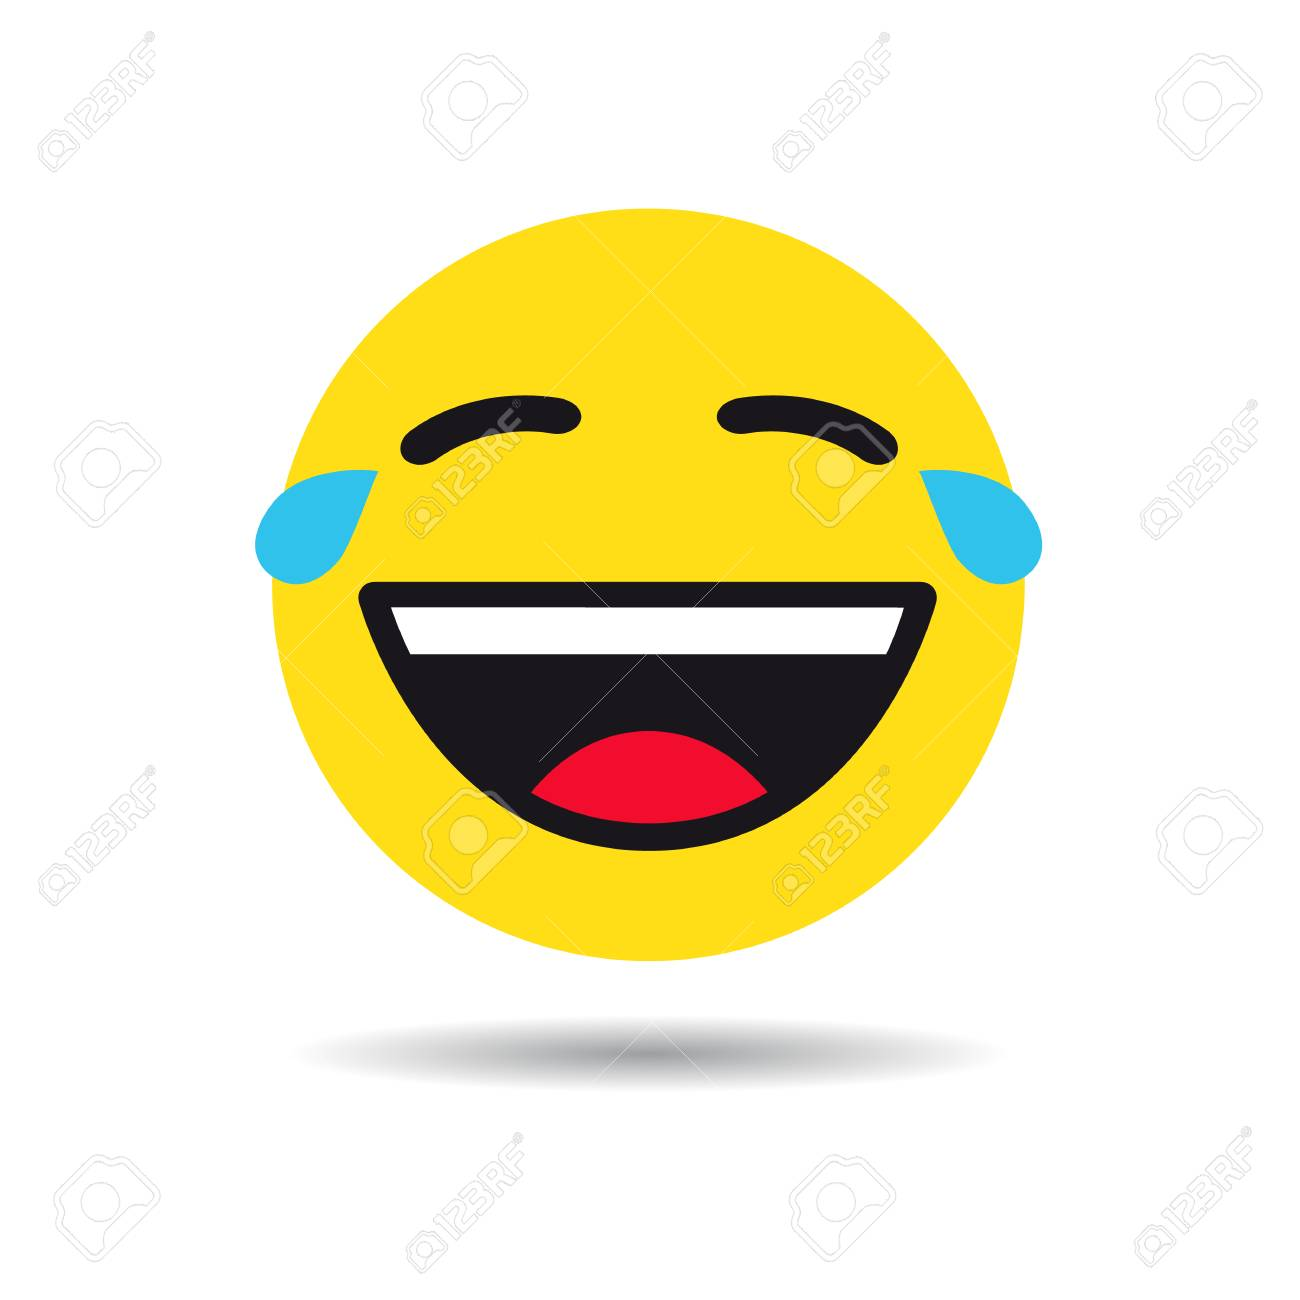 Funny emoticon or emoji symbol